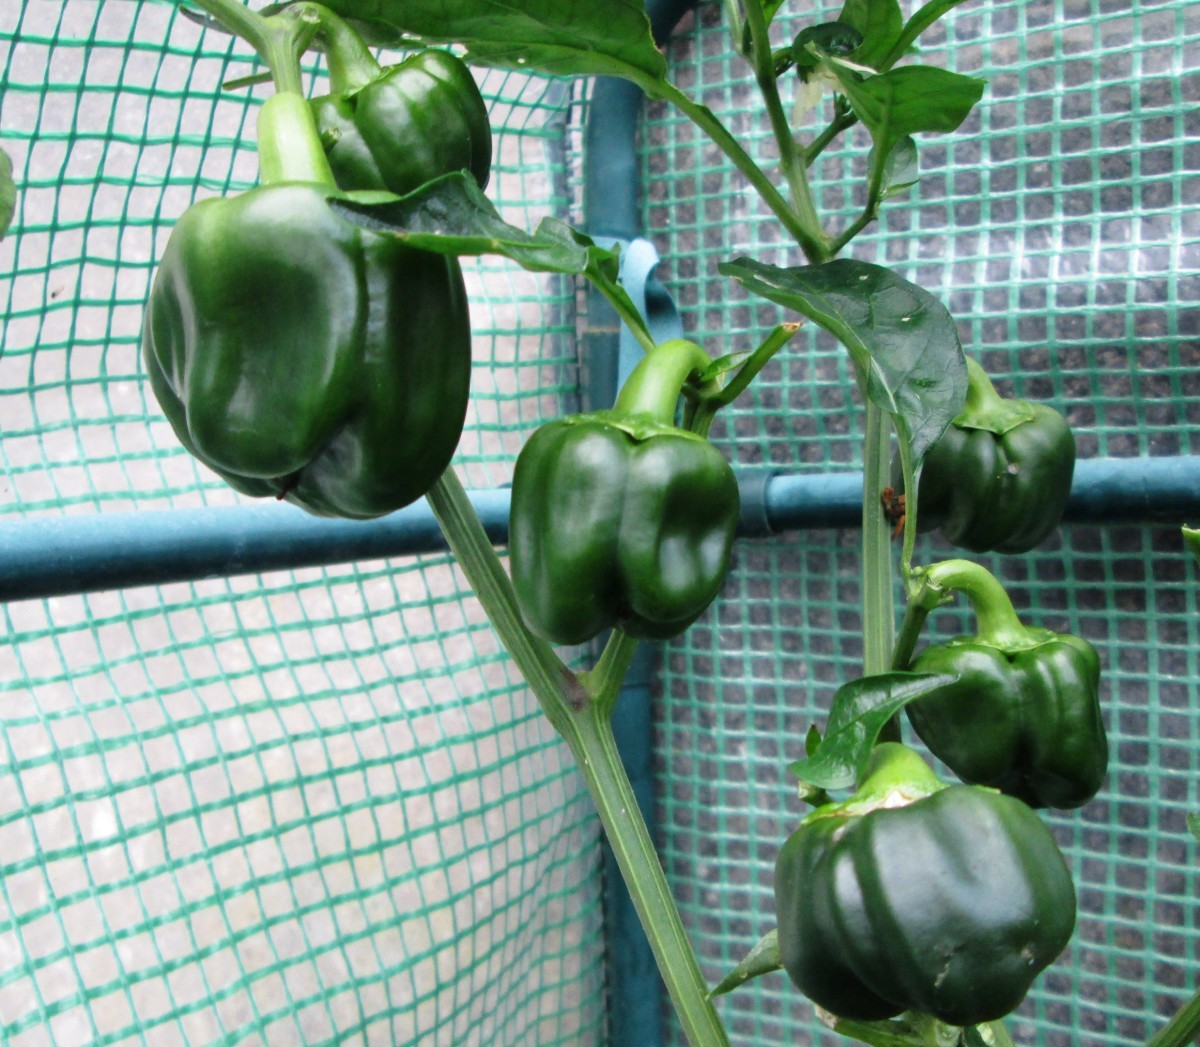 This article will tell you all you need to know to grow your own tasty sweet bell peppers.